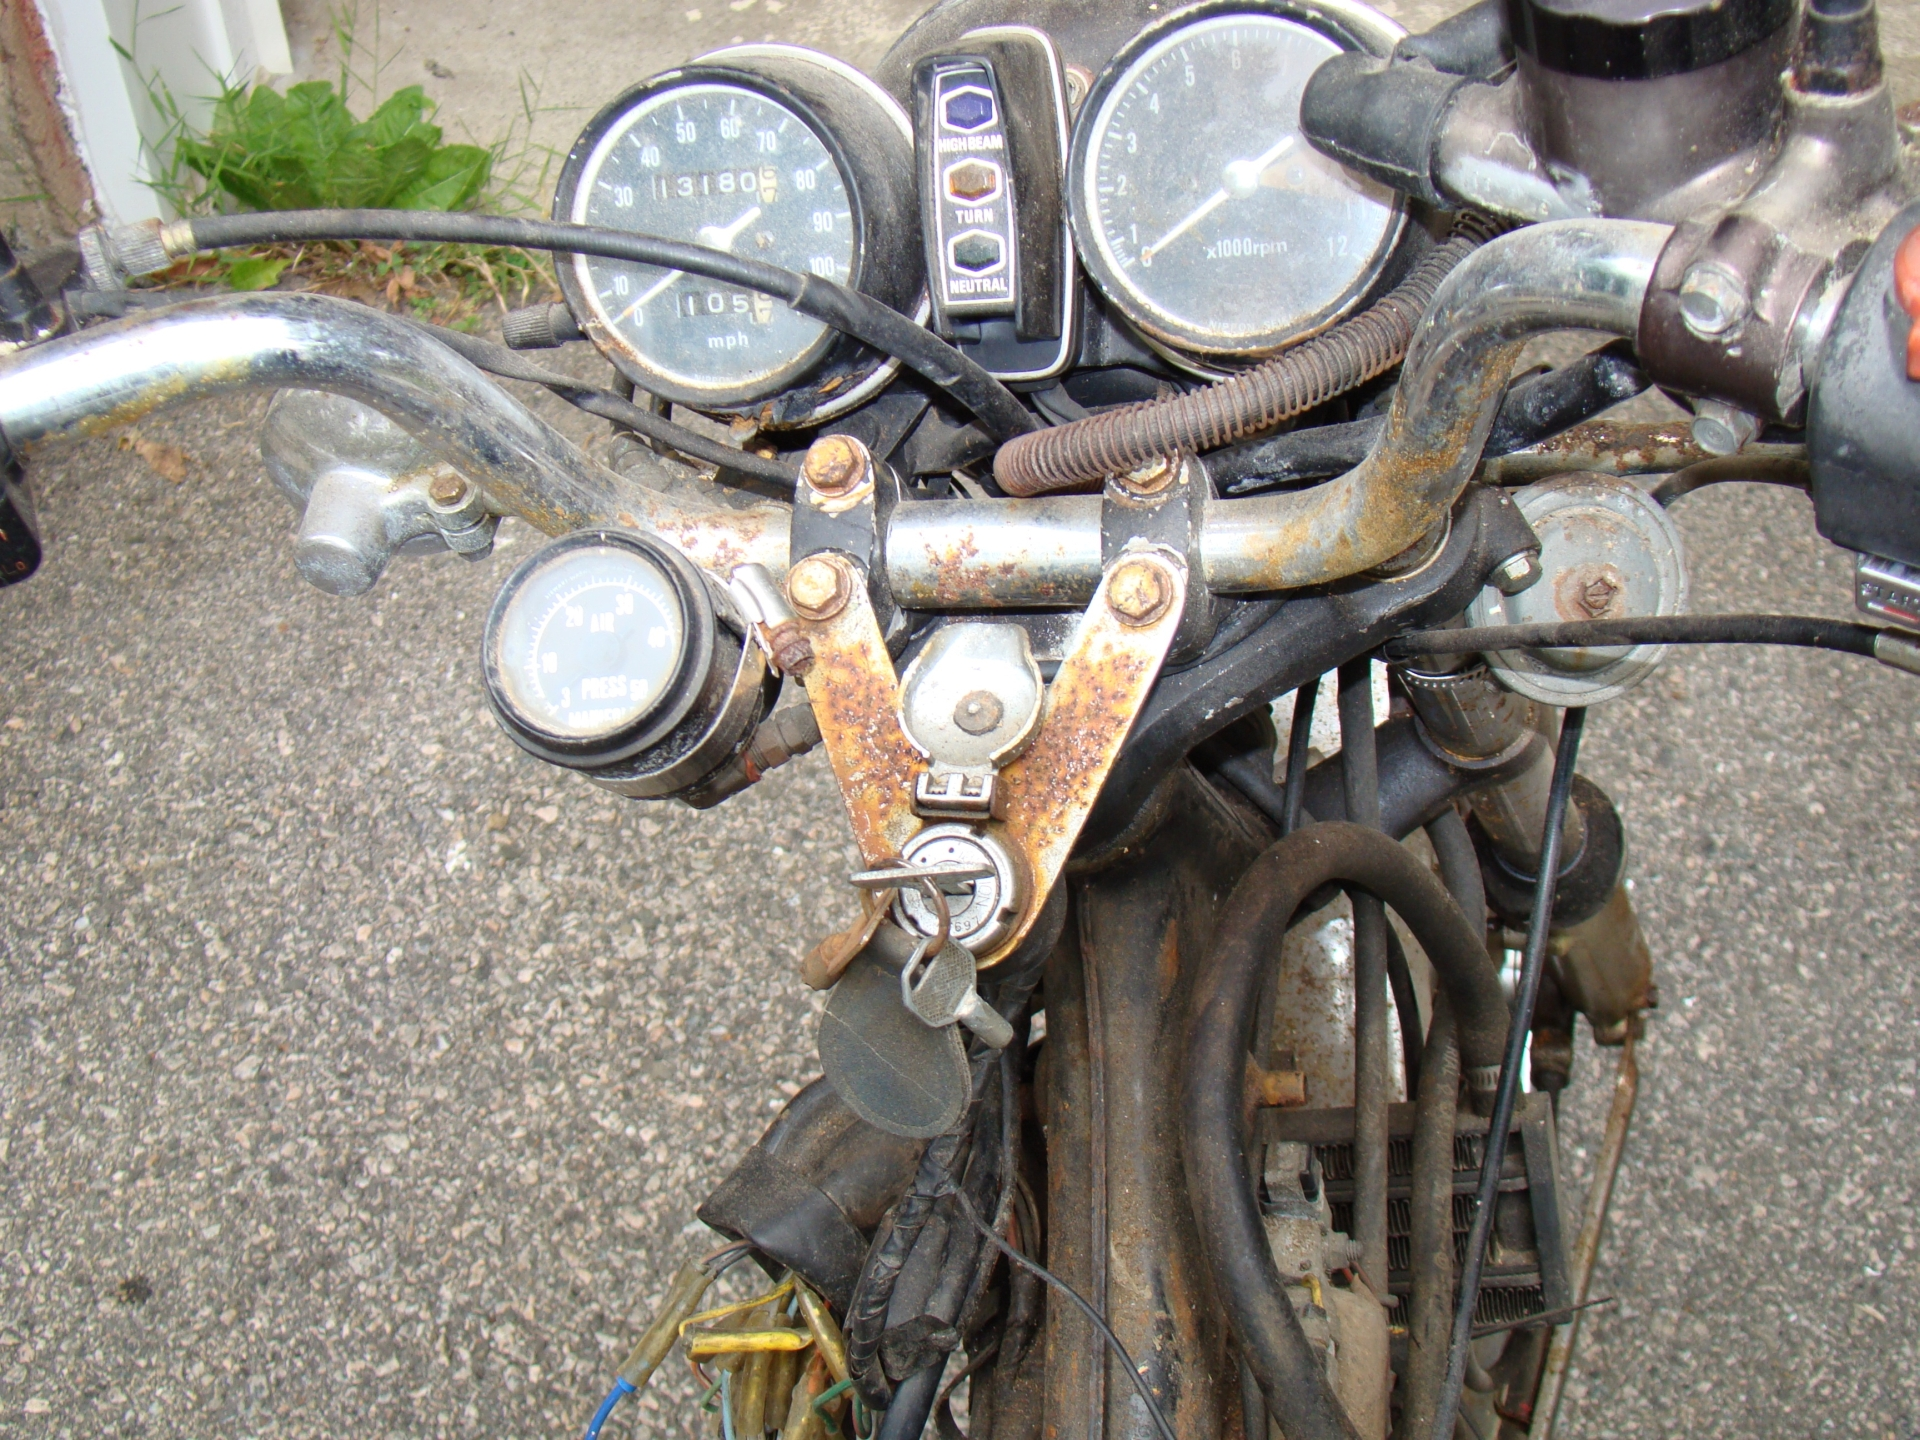 What's this doohickey on the handlebars? 1970 CL350